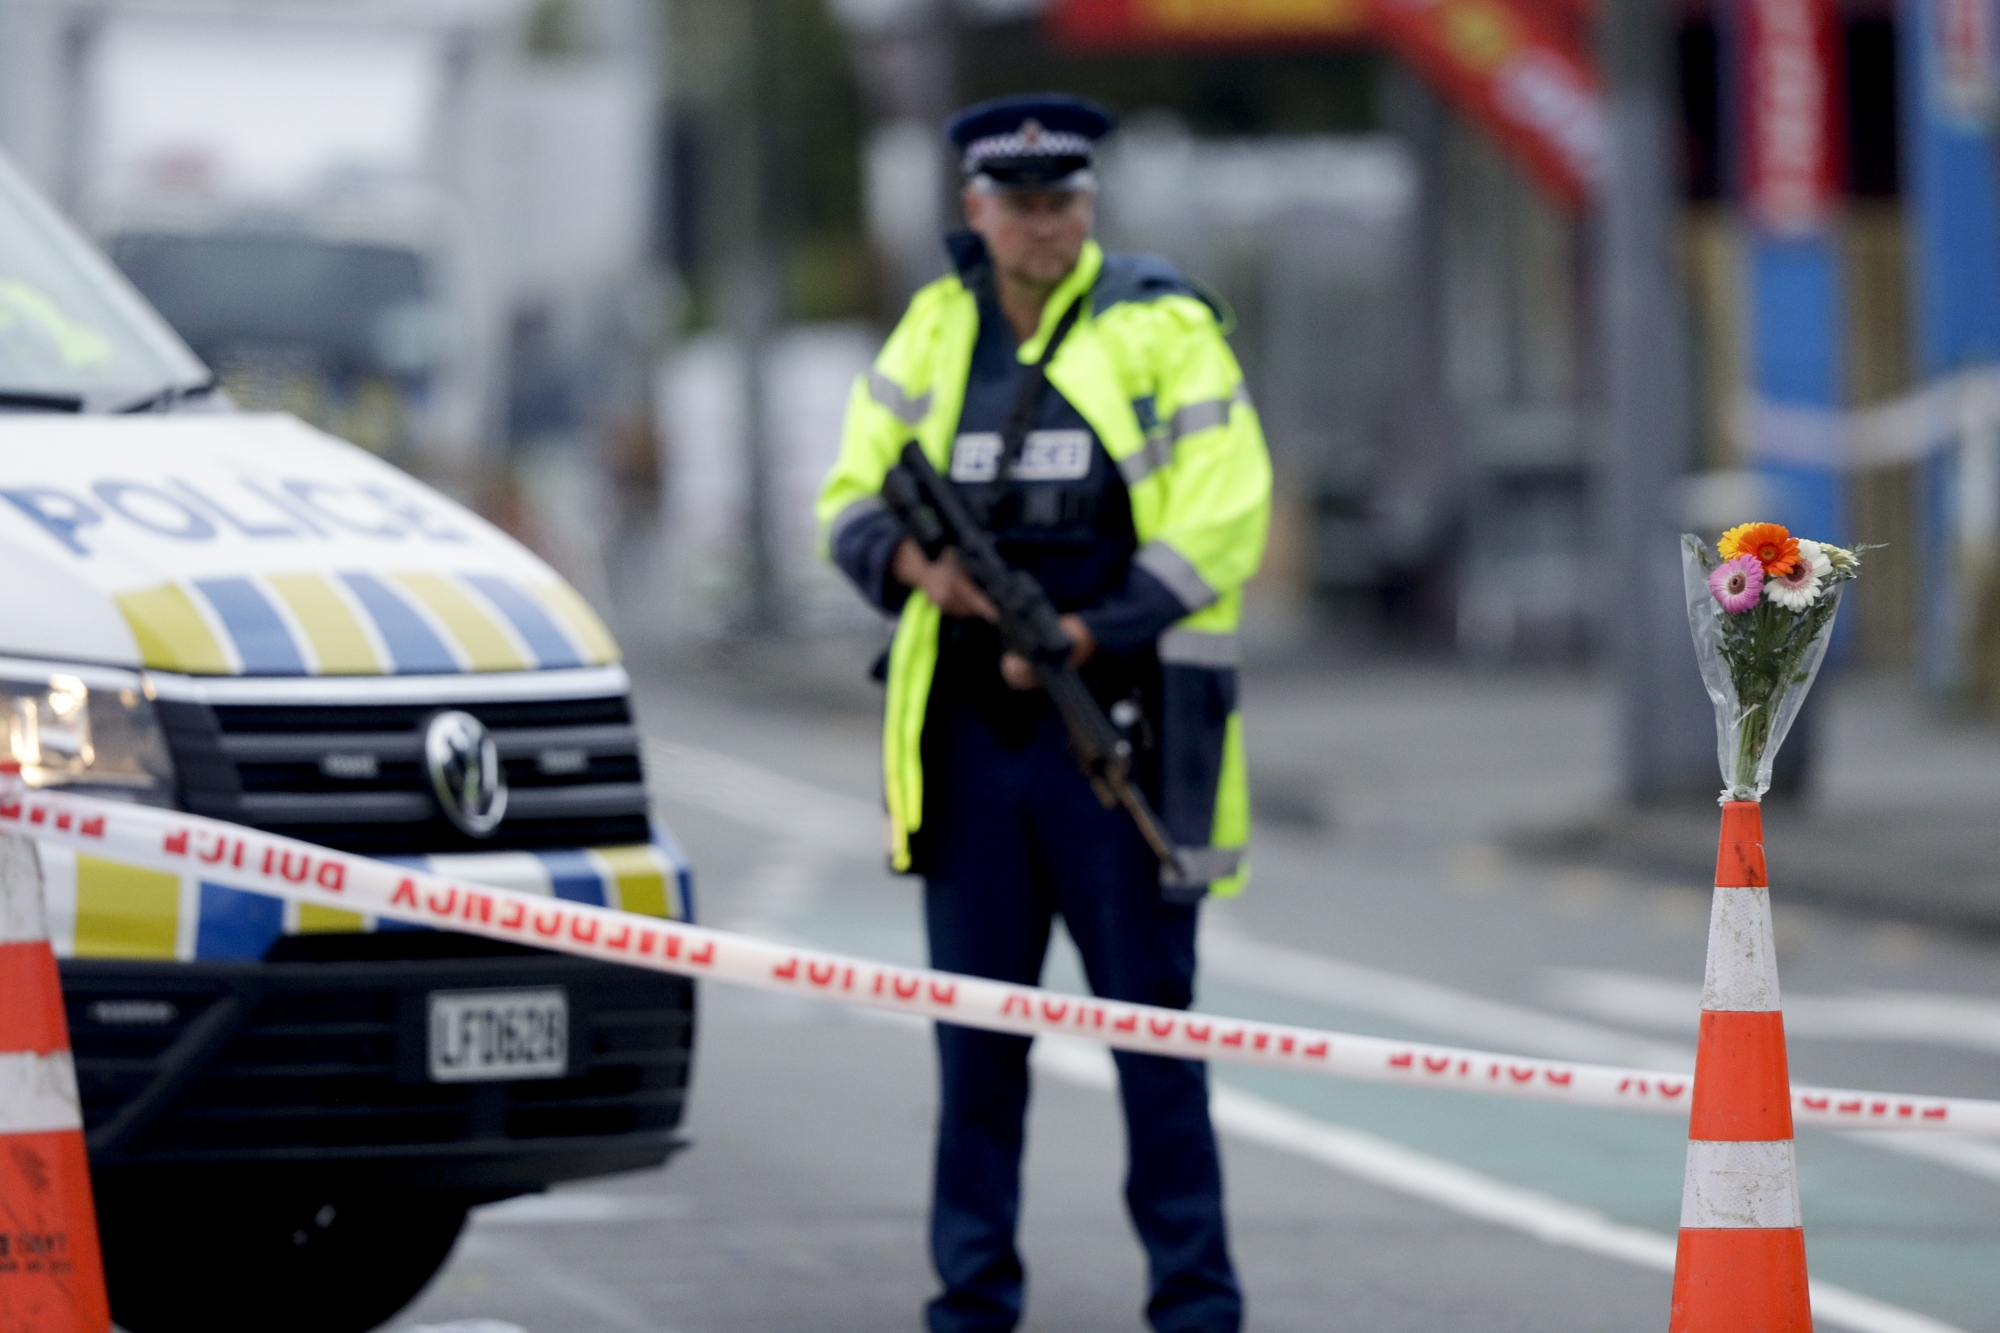 New Zealand Shooting Livestream Photo: New Zealand's History Of Gun Ownership Could Be Upended